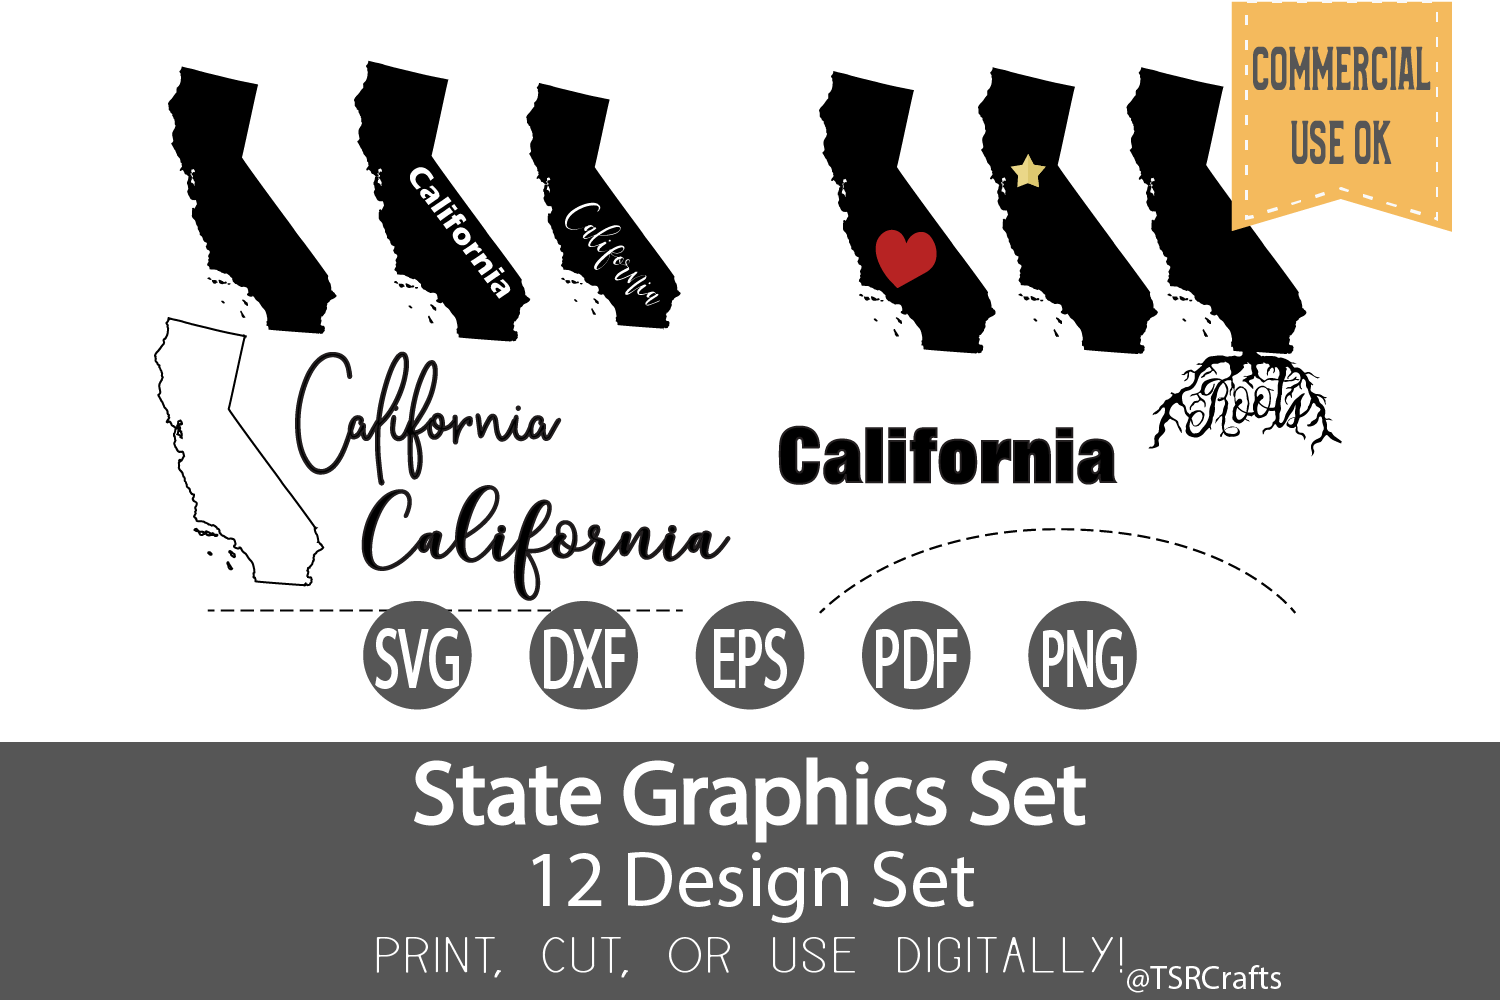 California State Graphics Set - Clip Art and Digital Cut fil example image 1